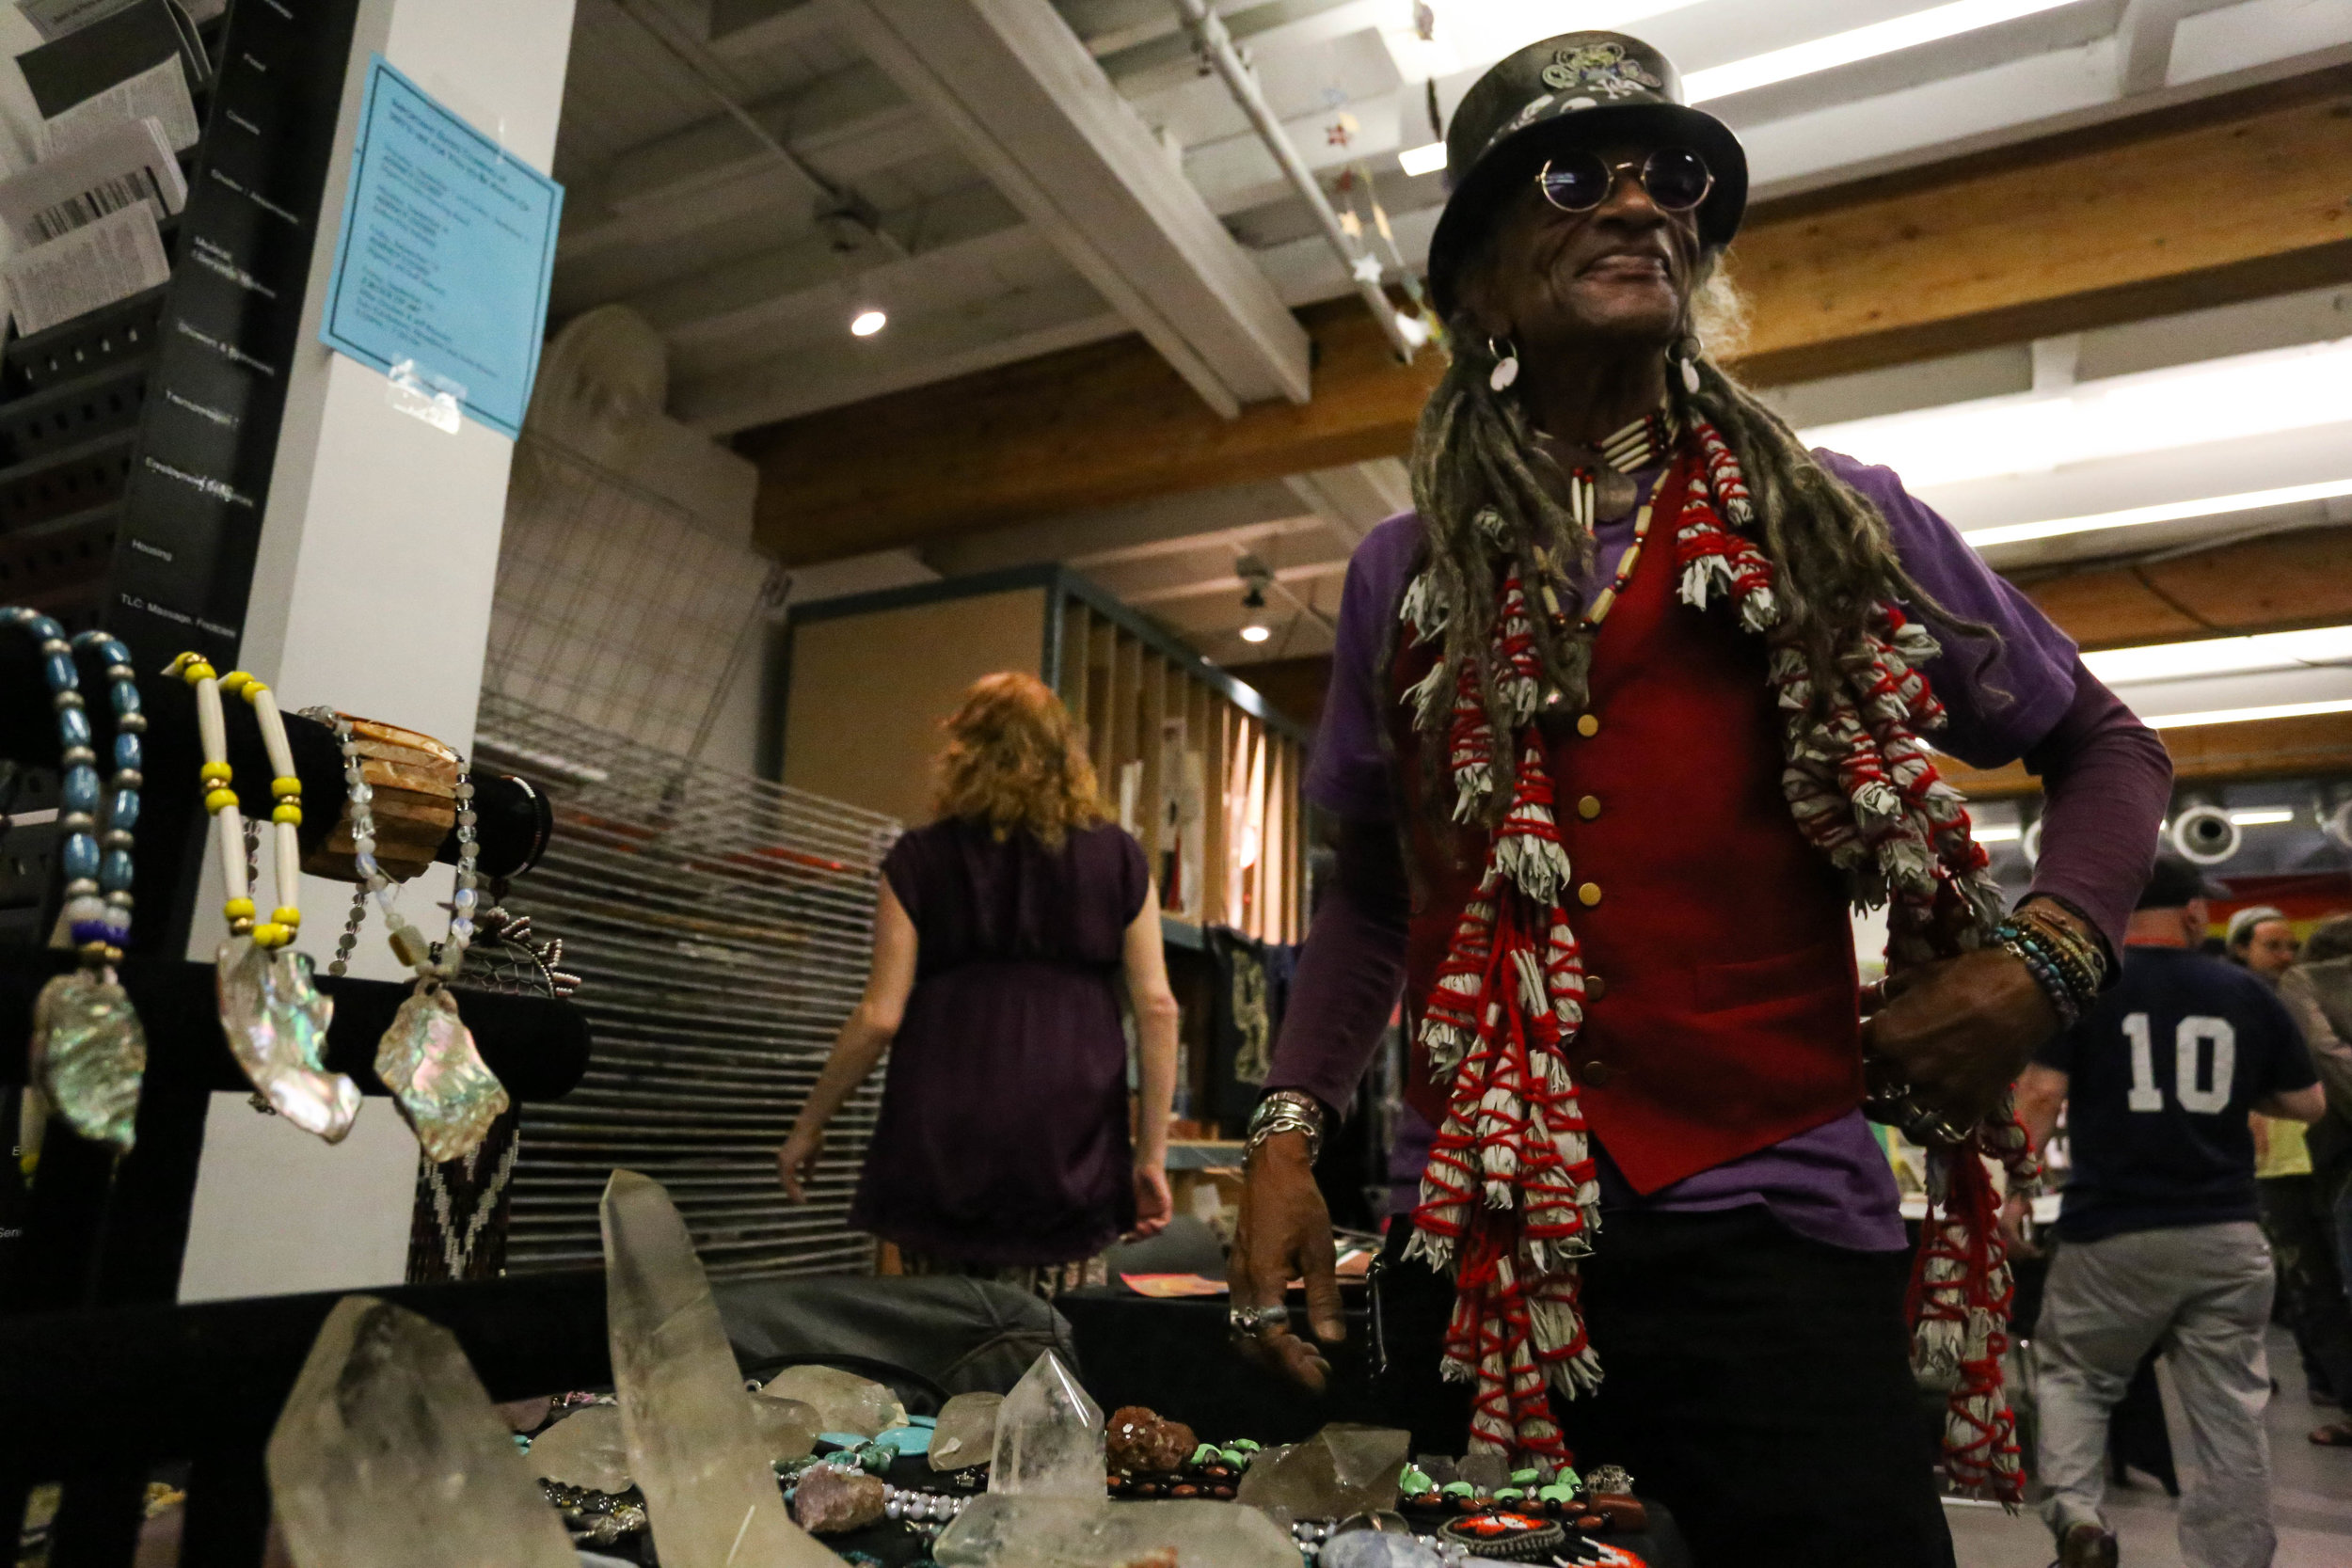 """John Beausage, a local San Francisco artist, at the Art Bazaar located in Hospitality House on Market street for 2 Blocks of Art. Hospitality House helps """"starving artist get a spot to promote their work."""" get a spot to promote their work.""""Friday, September 16, 2016.Mid-Market News"""